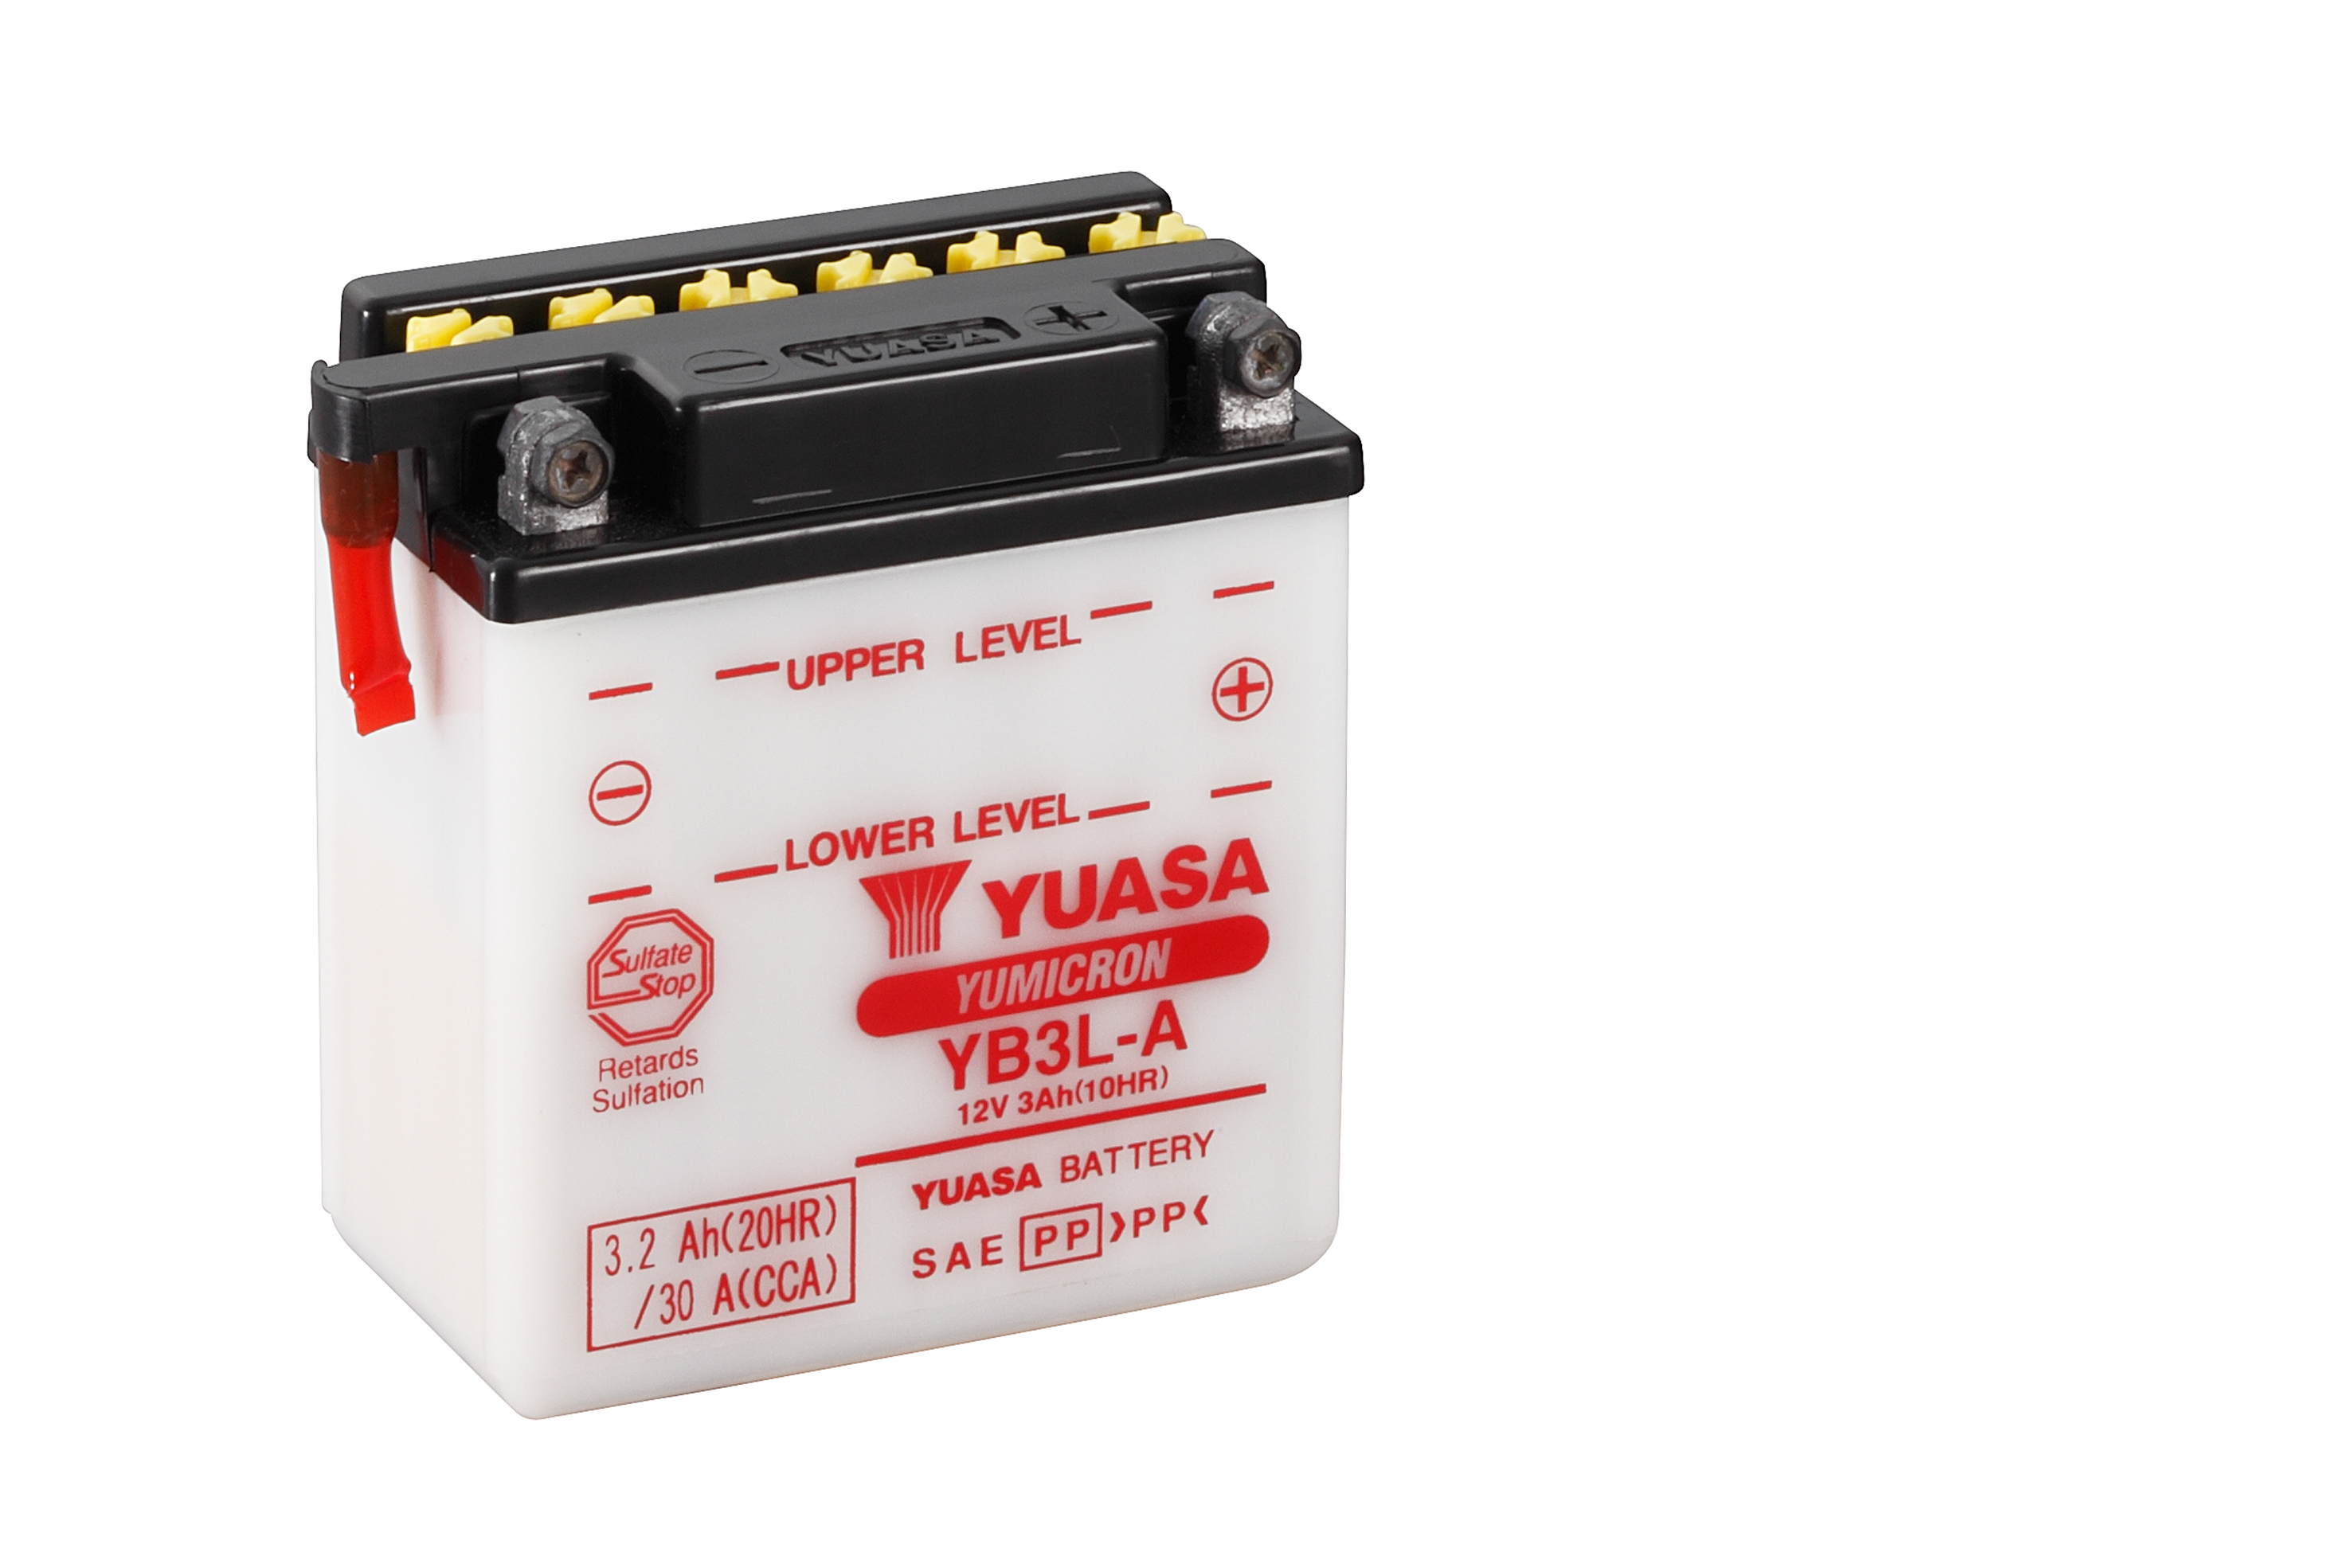 yuasa motorcycle battery yb3l a 12v 3ah from county battery. Black Bedroom Furniture Sets. Home Design Ideas